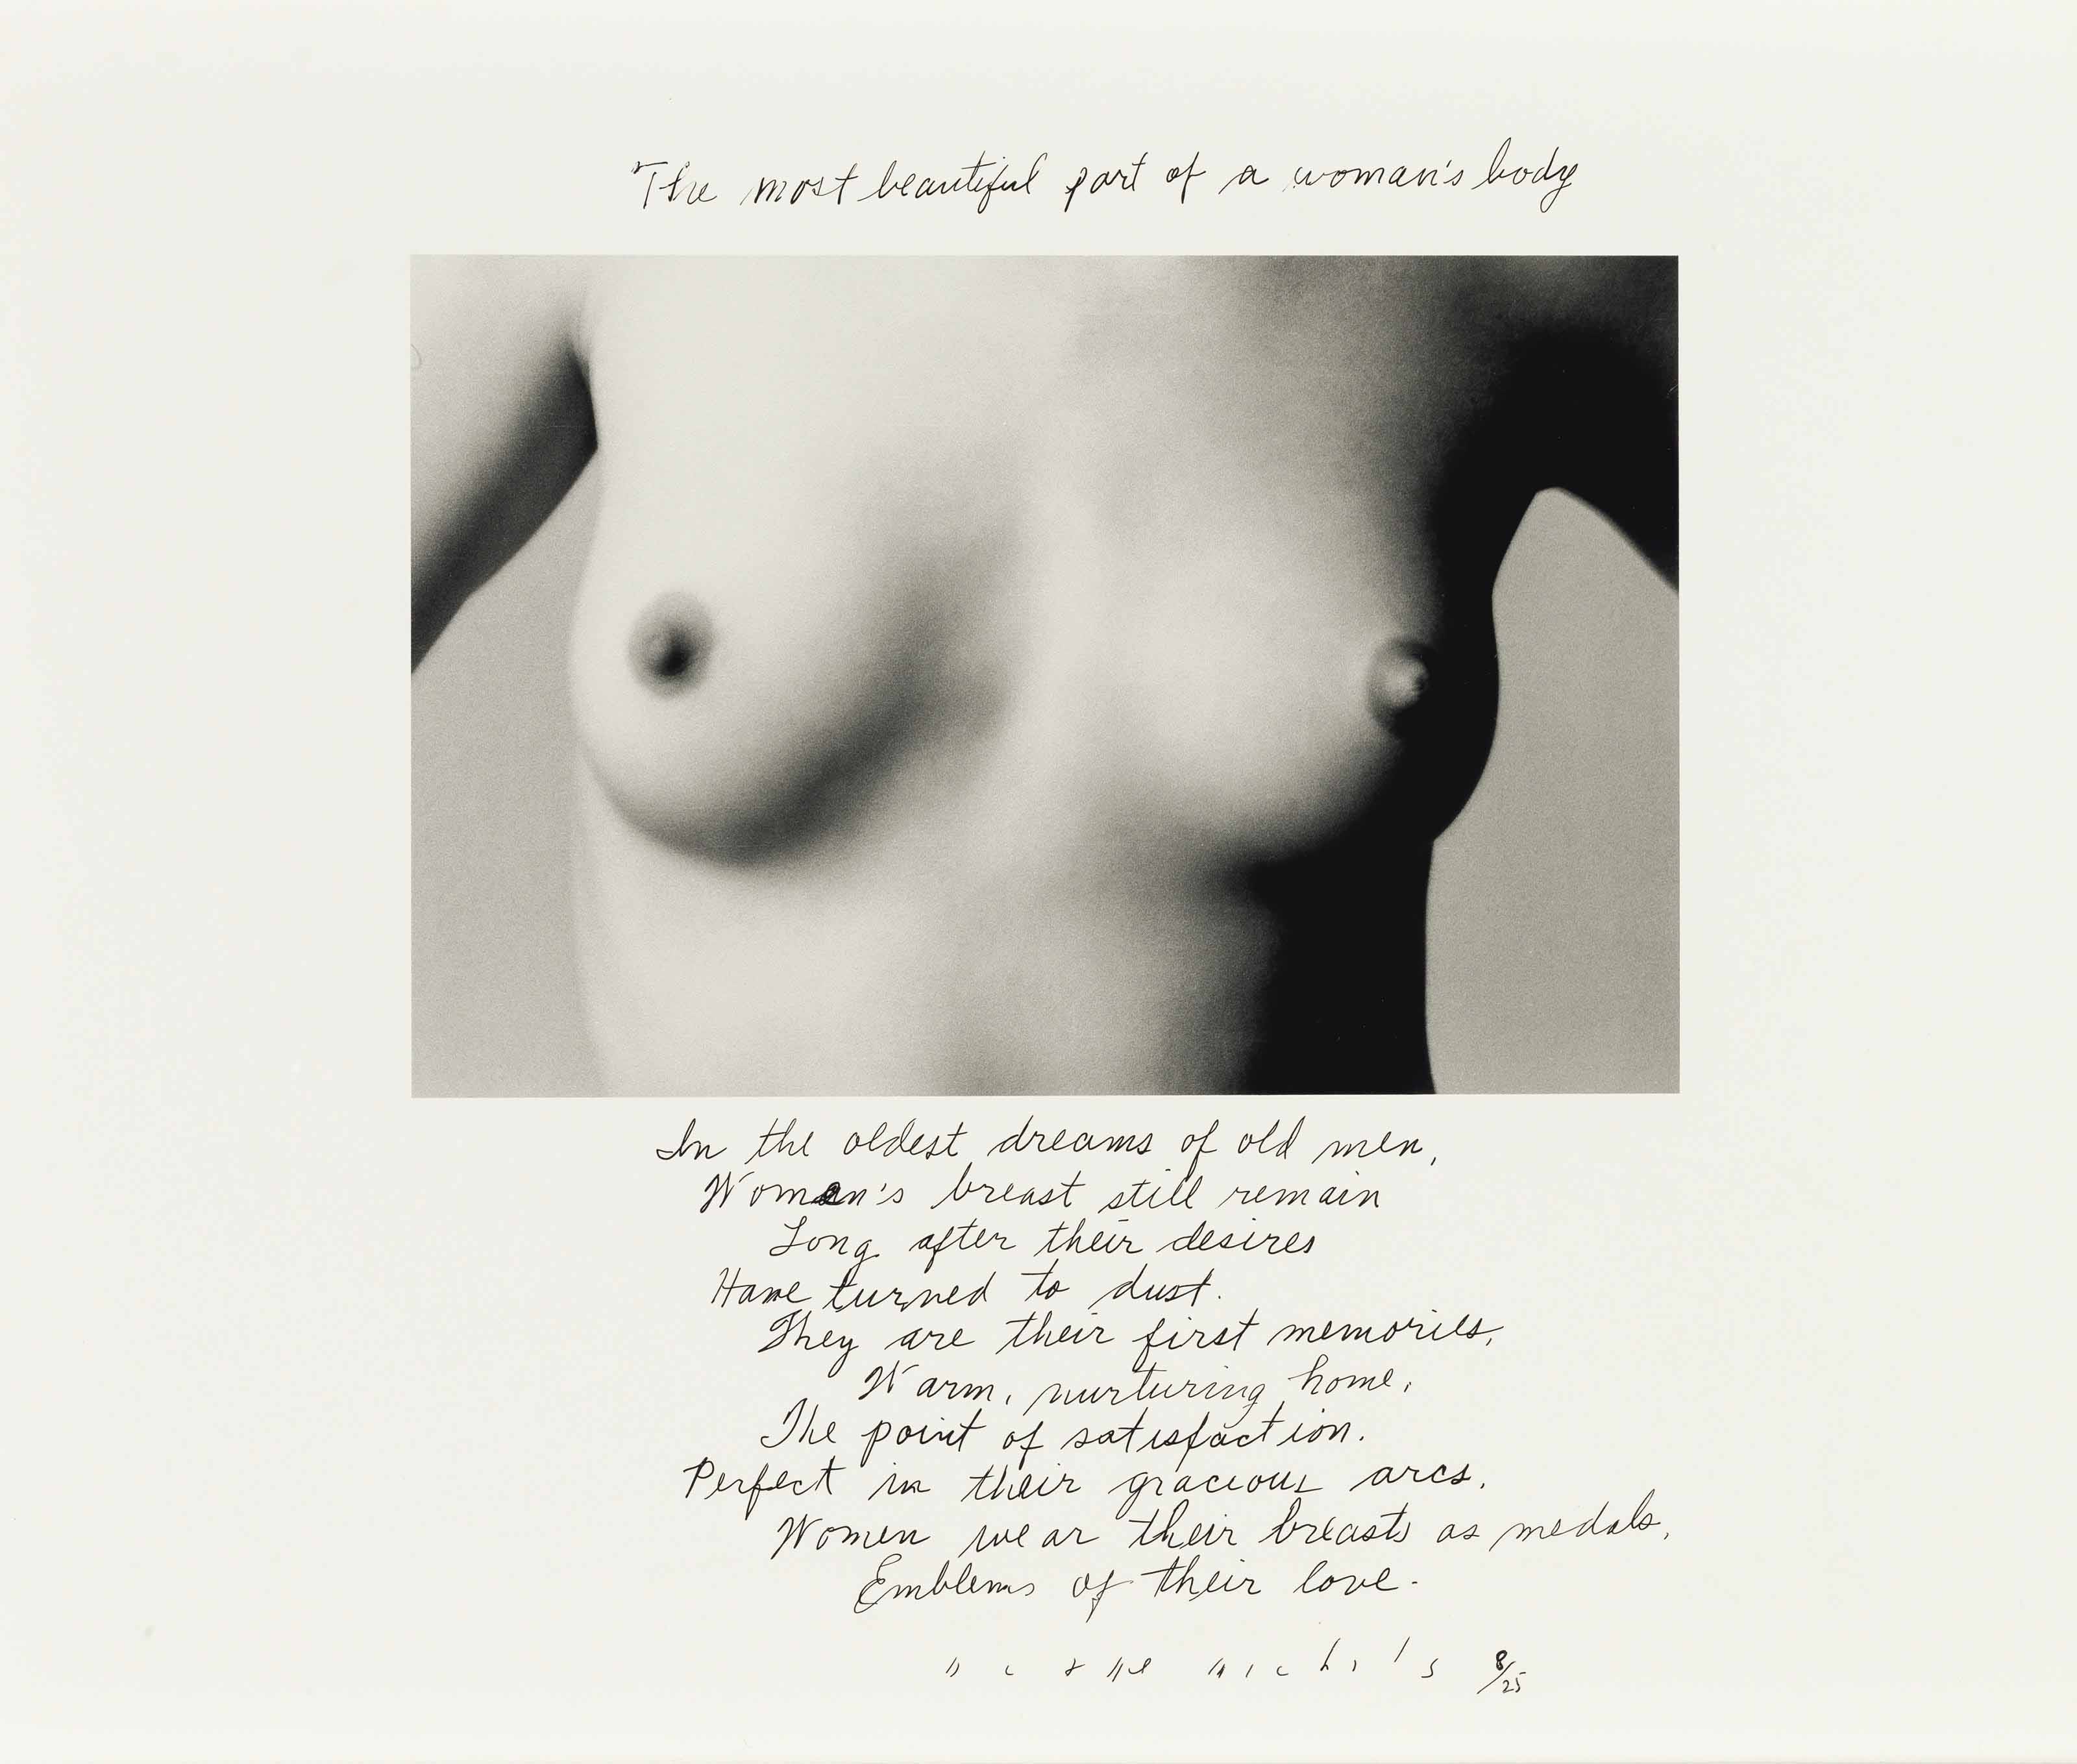 The Most Beautiful Part of a Woman's Body, 1986